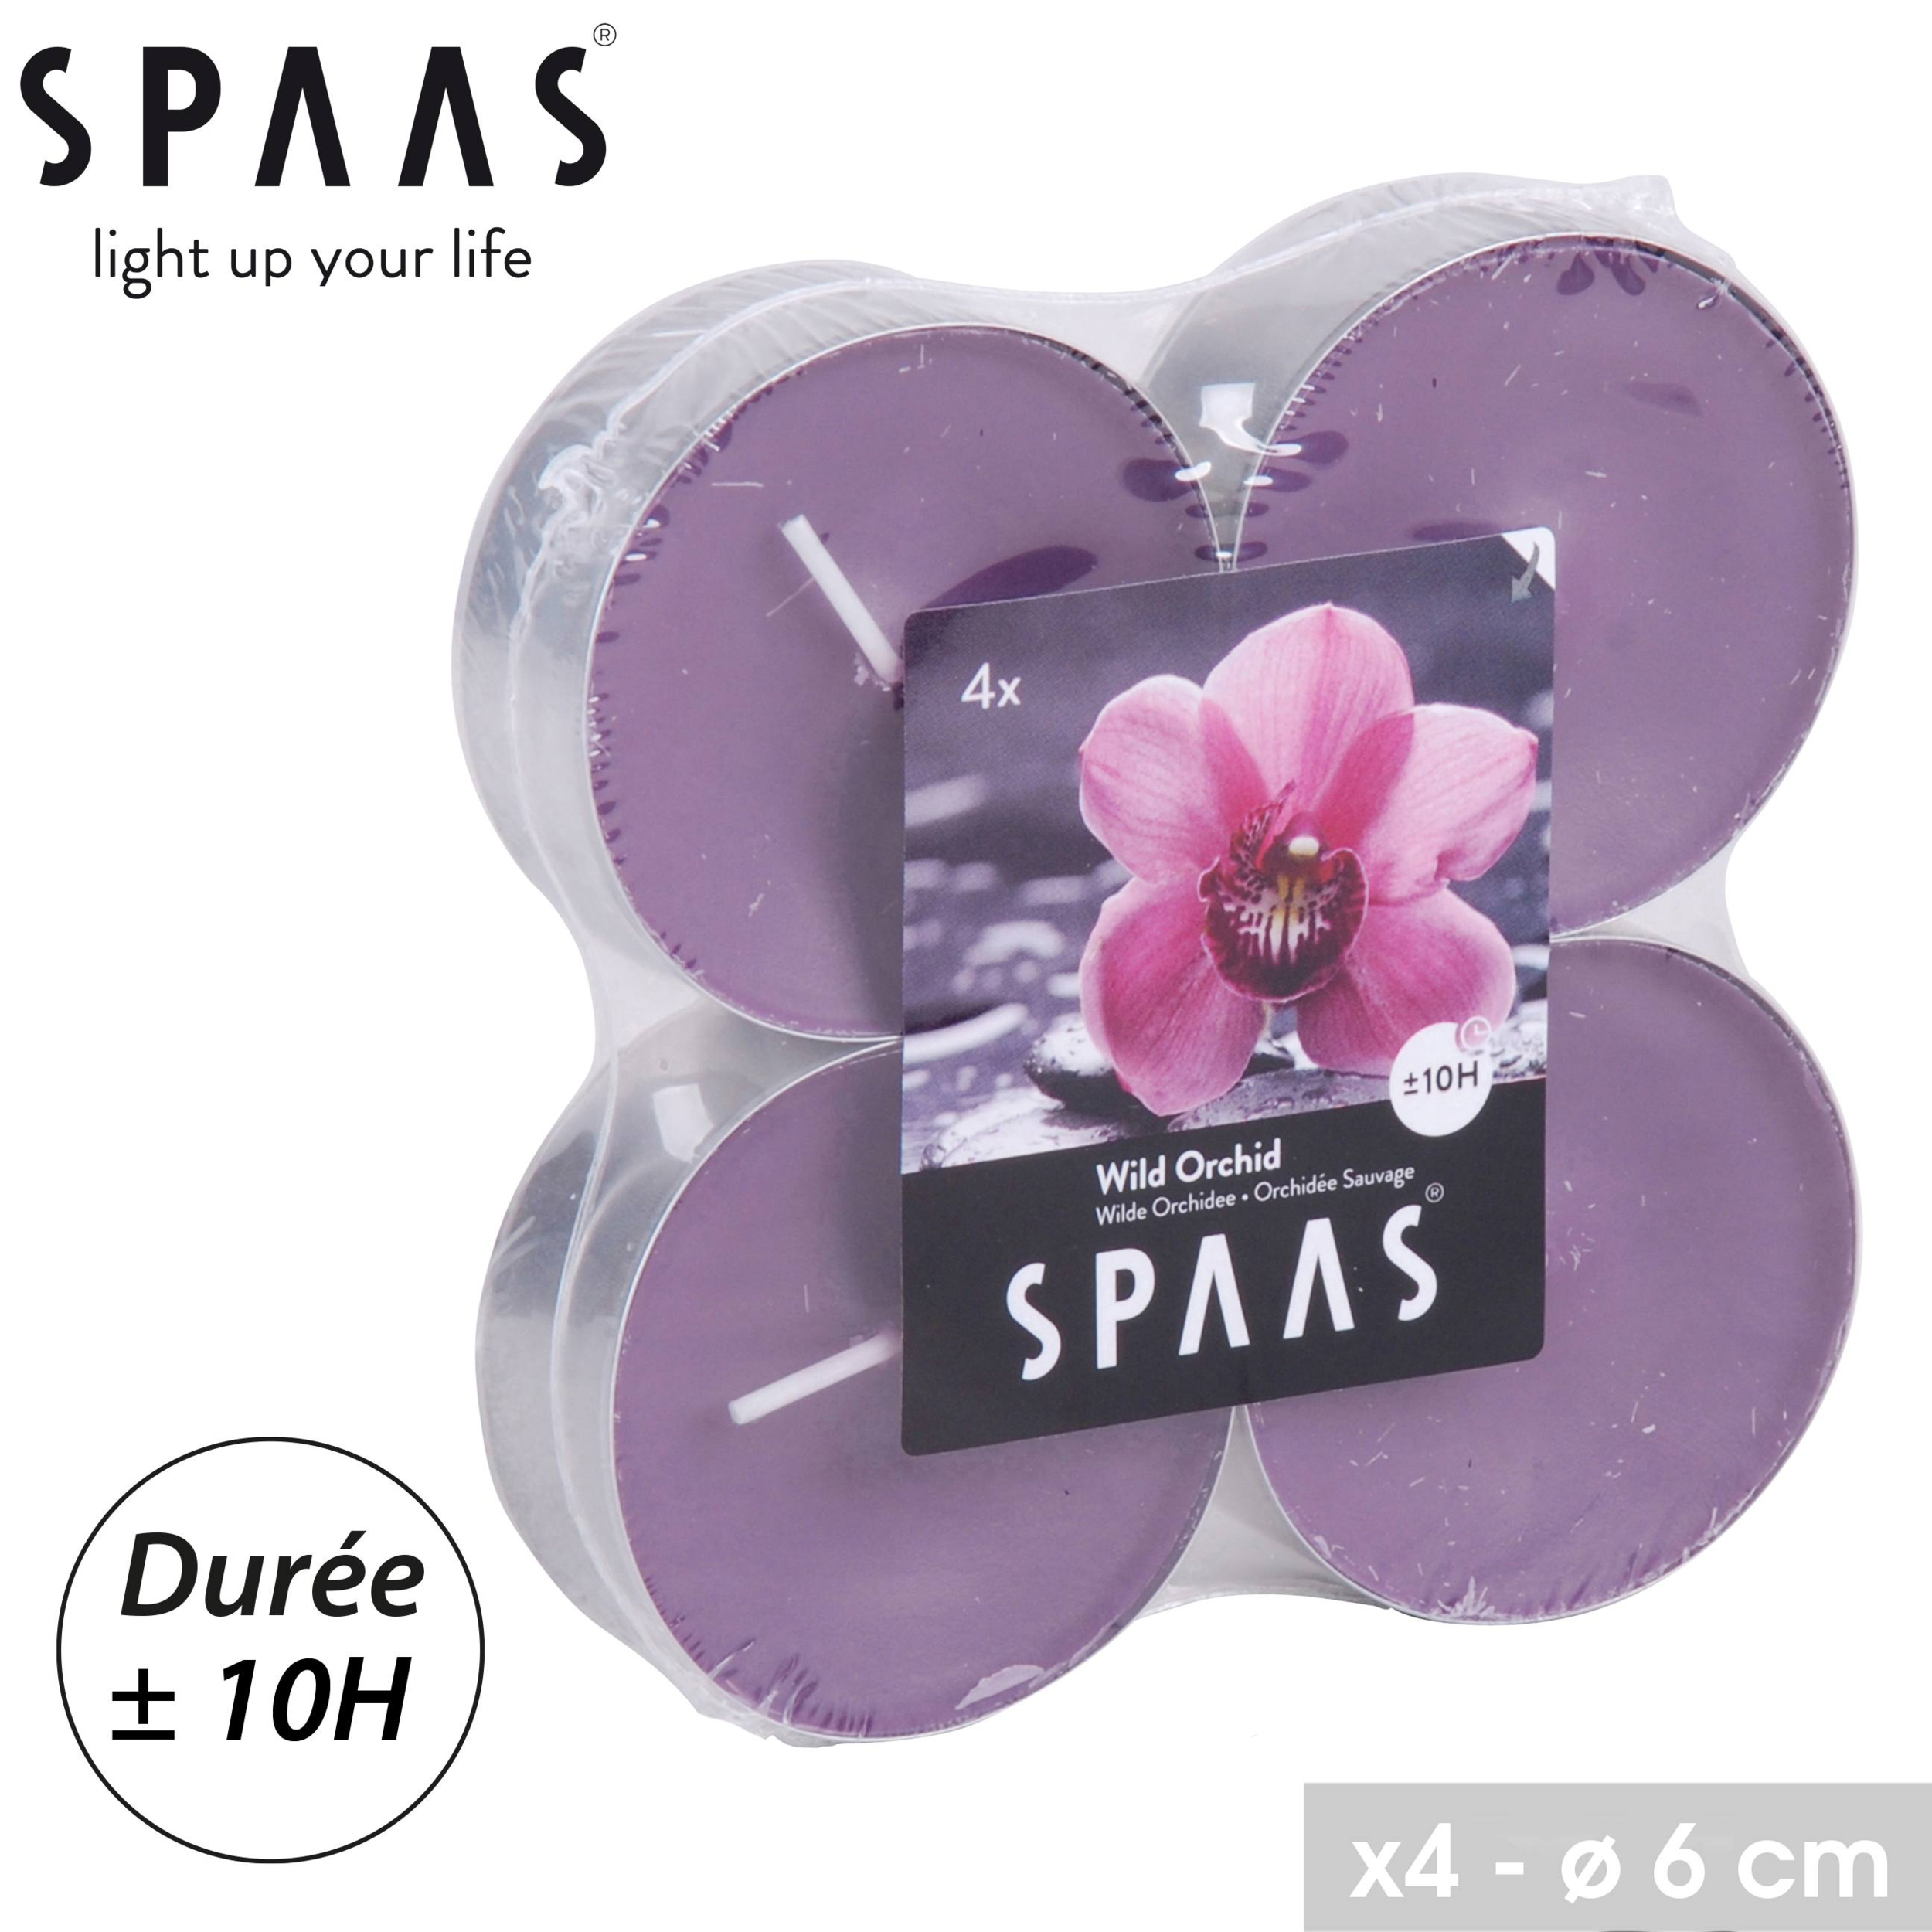 SPAAS_-_BOUGIE_CHAUFFE_PLAT_MAX_X4_PARFUM_ORCHIDEE_SAUVAGE_38524